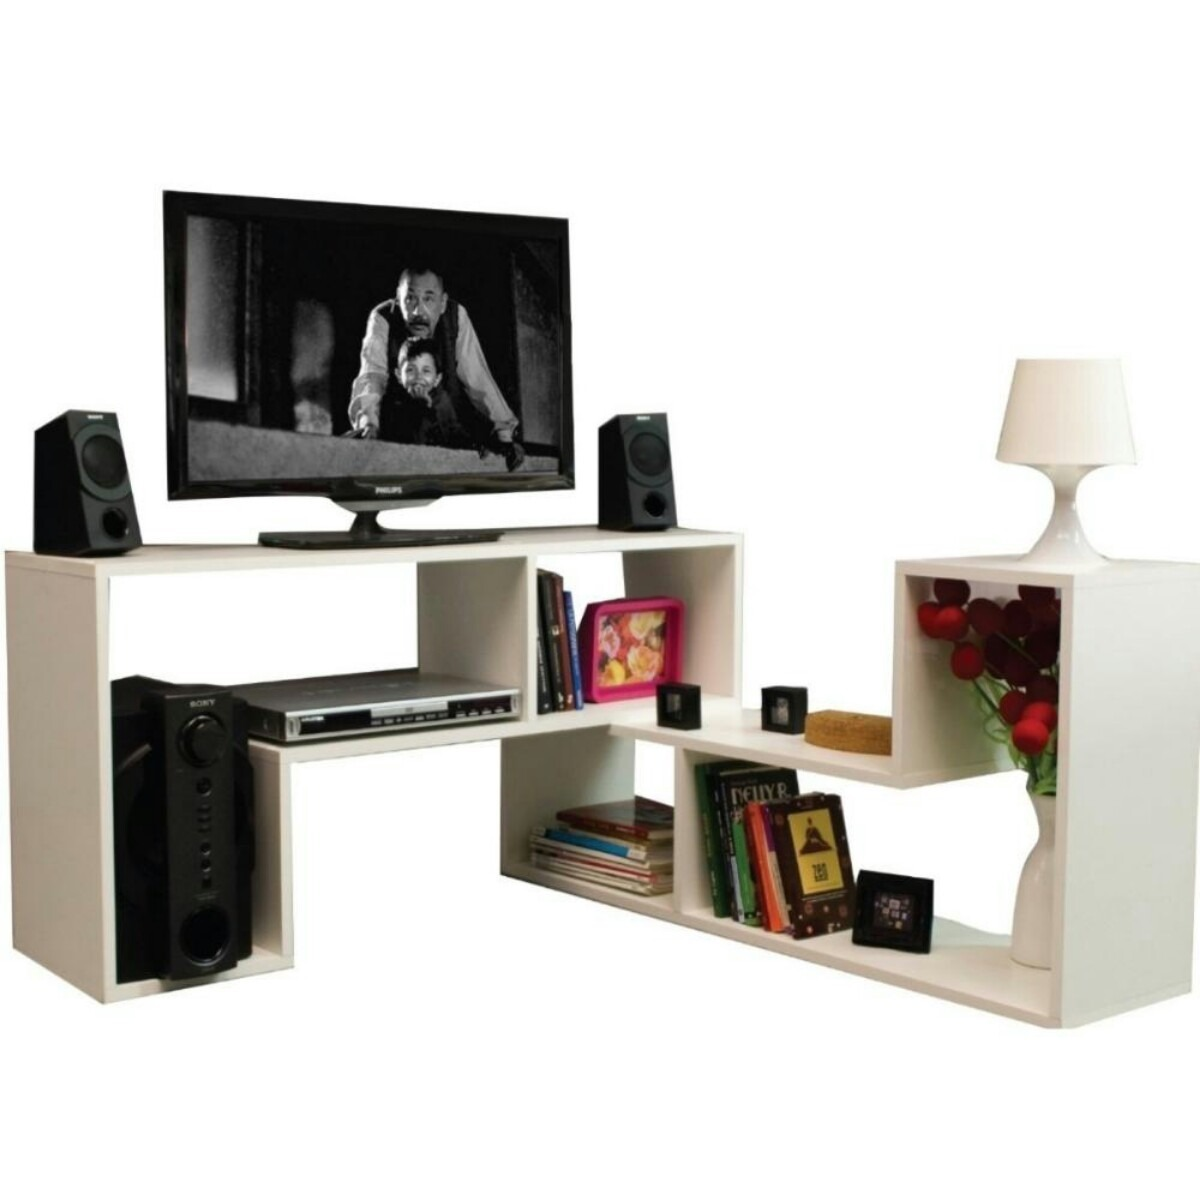 Muebles Modulares Minimalistas Para Tv Pc Audio Biblioteca Bs  # Muebles Modernos Diga Center